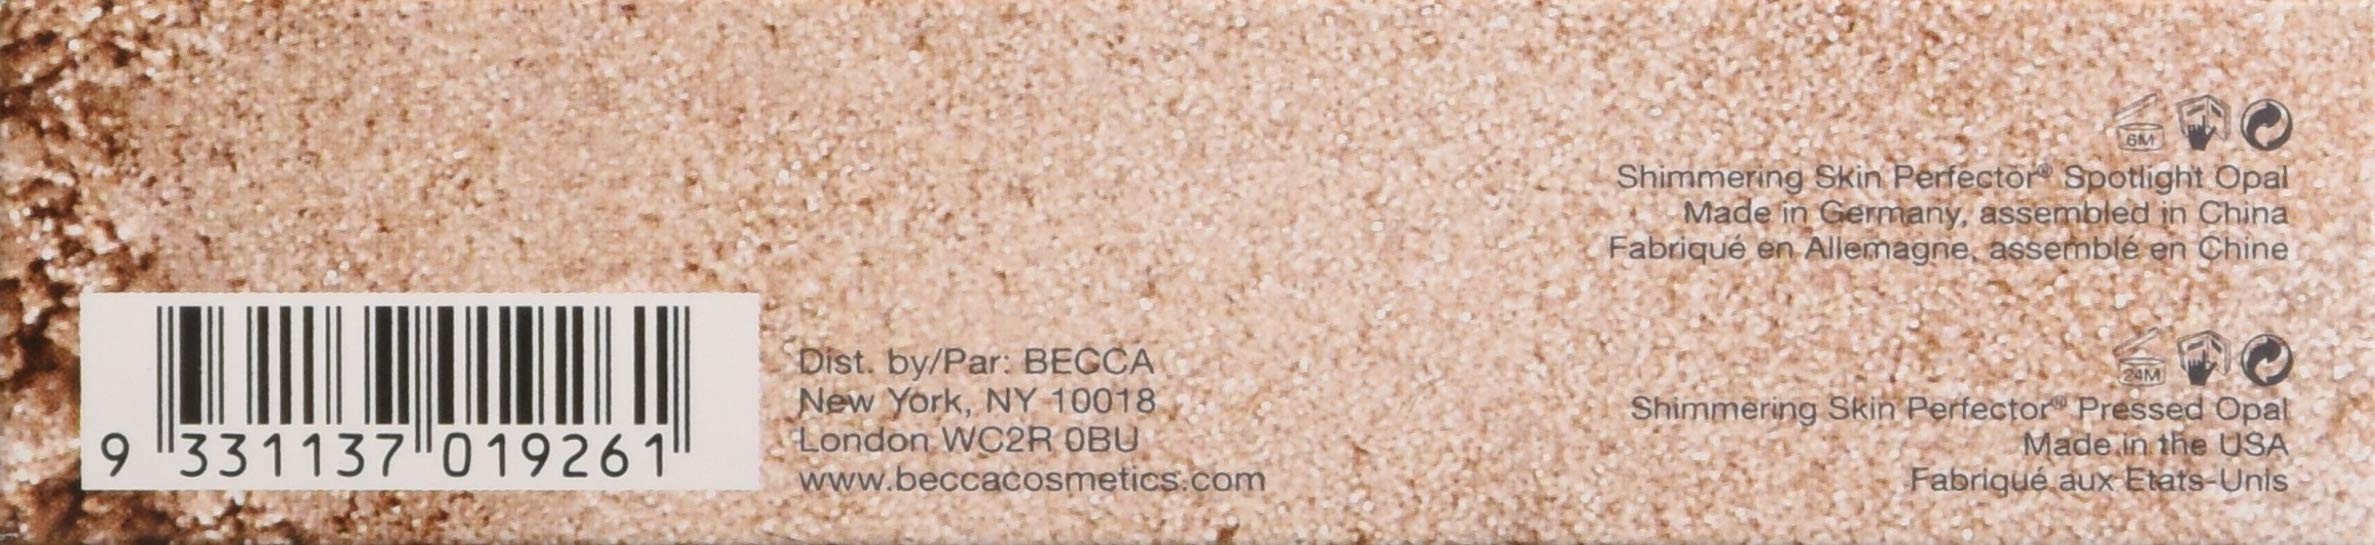 Becca 2 Piece Opal Glow On The Go Shimmering Skin Perfector Set, 1.2 Ounce by Becca (Image #4)